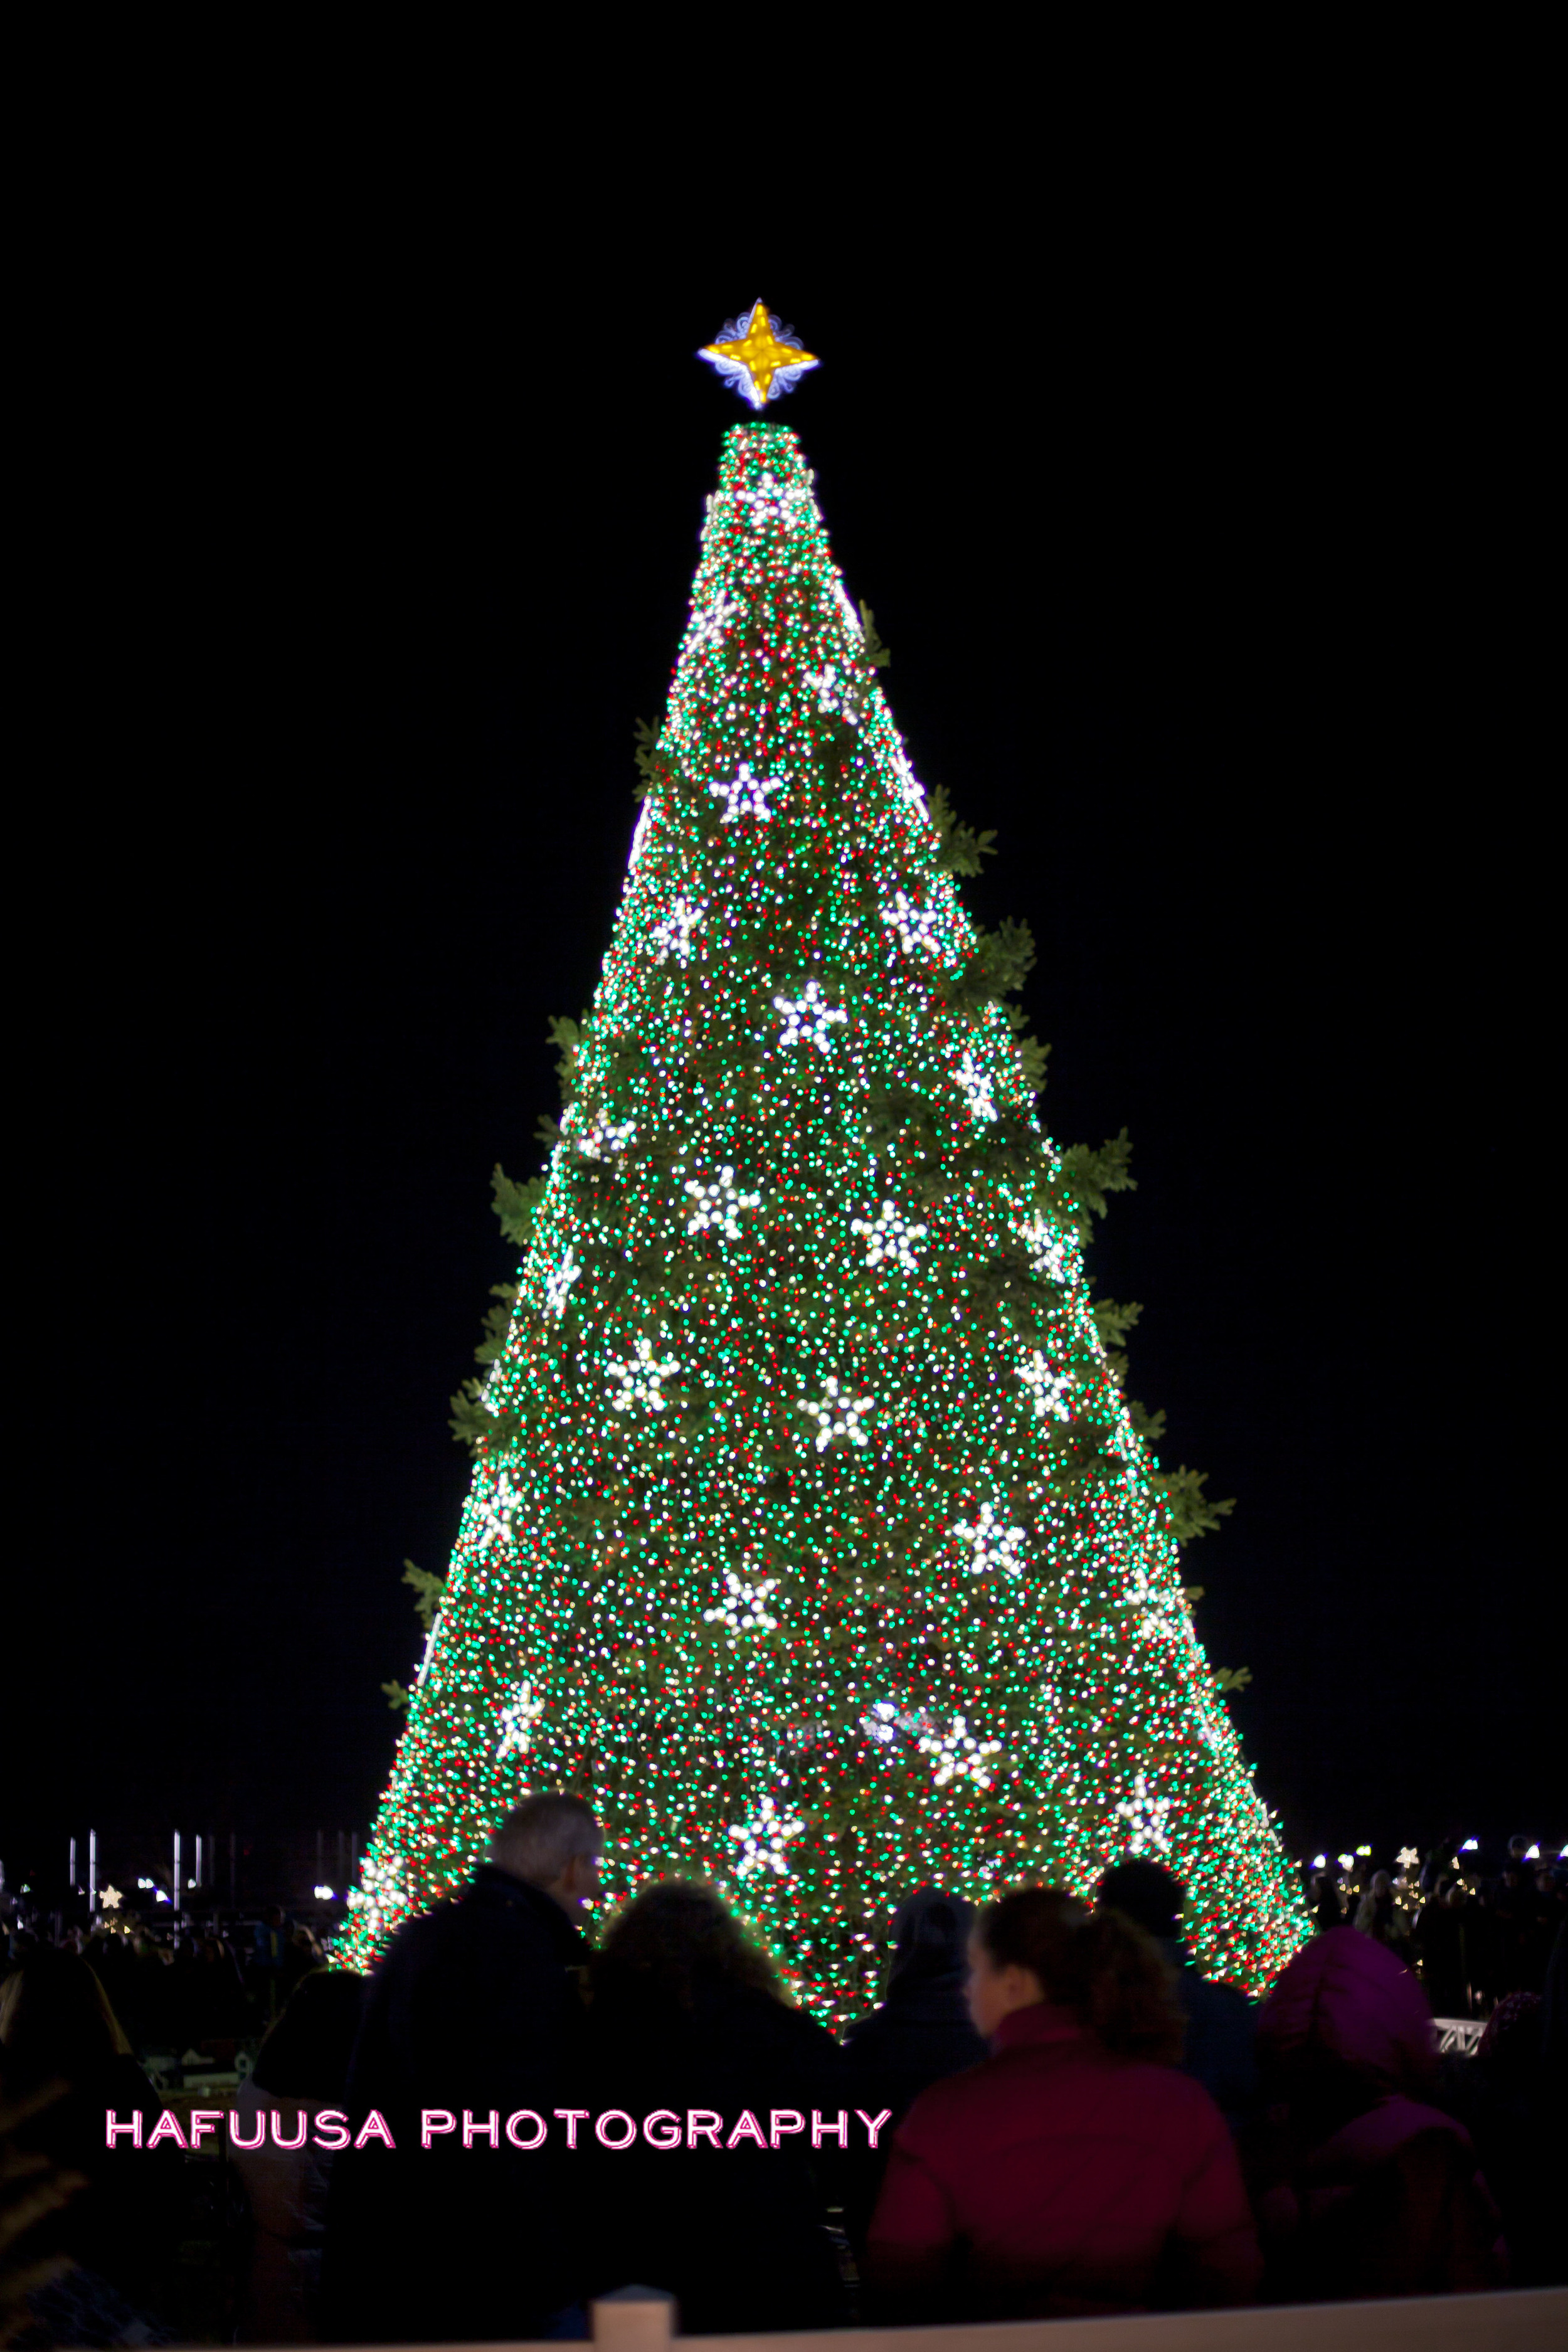 National Christmas Tree.jpg